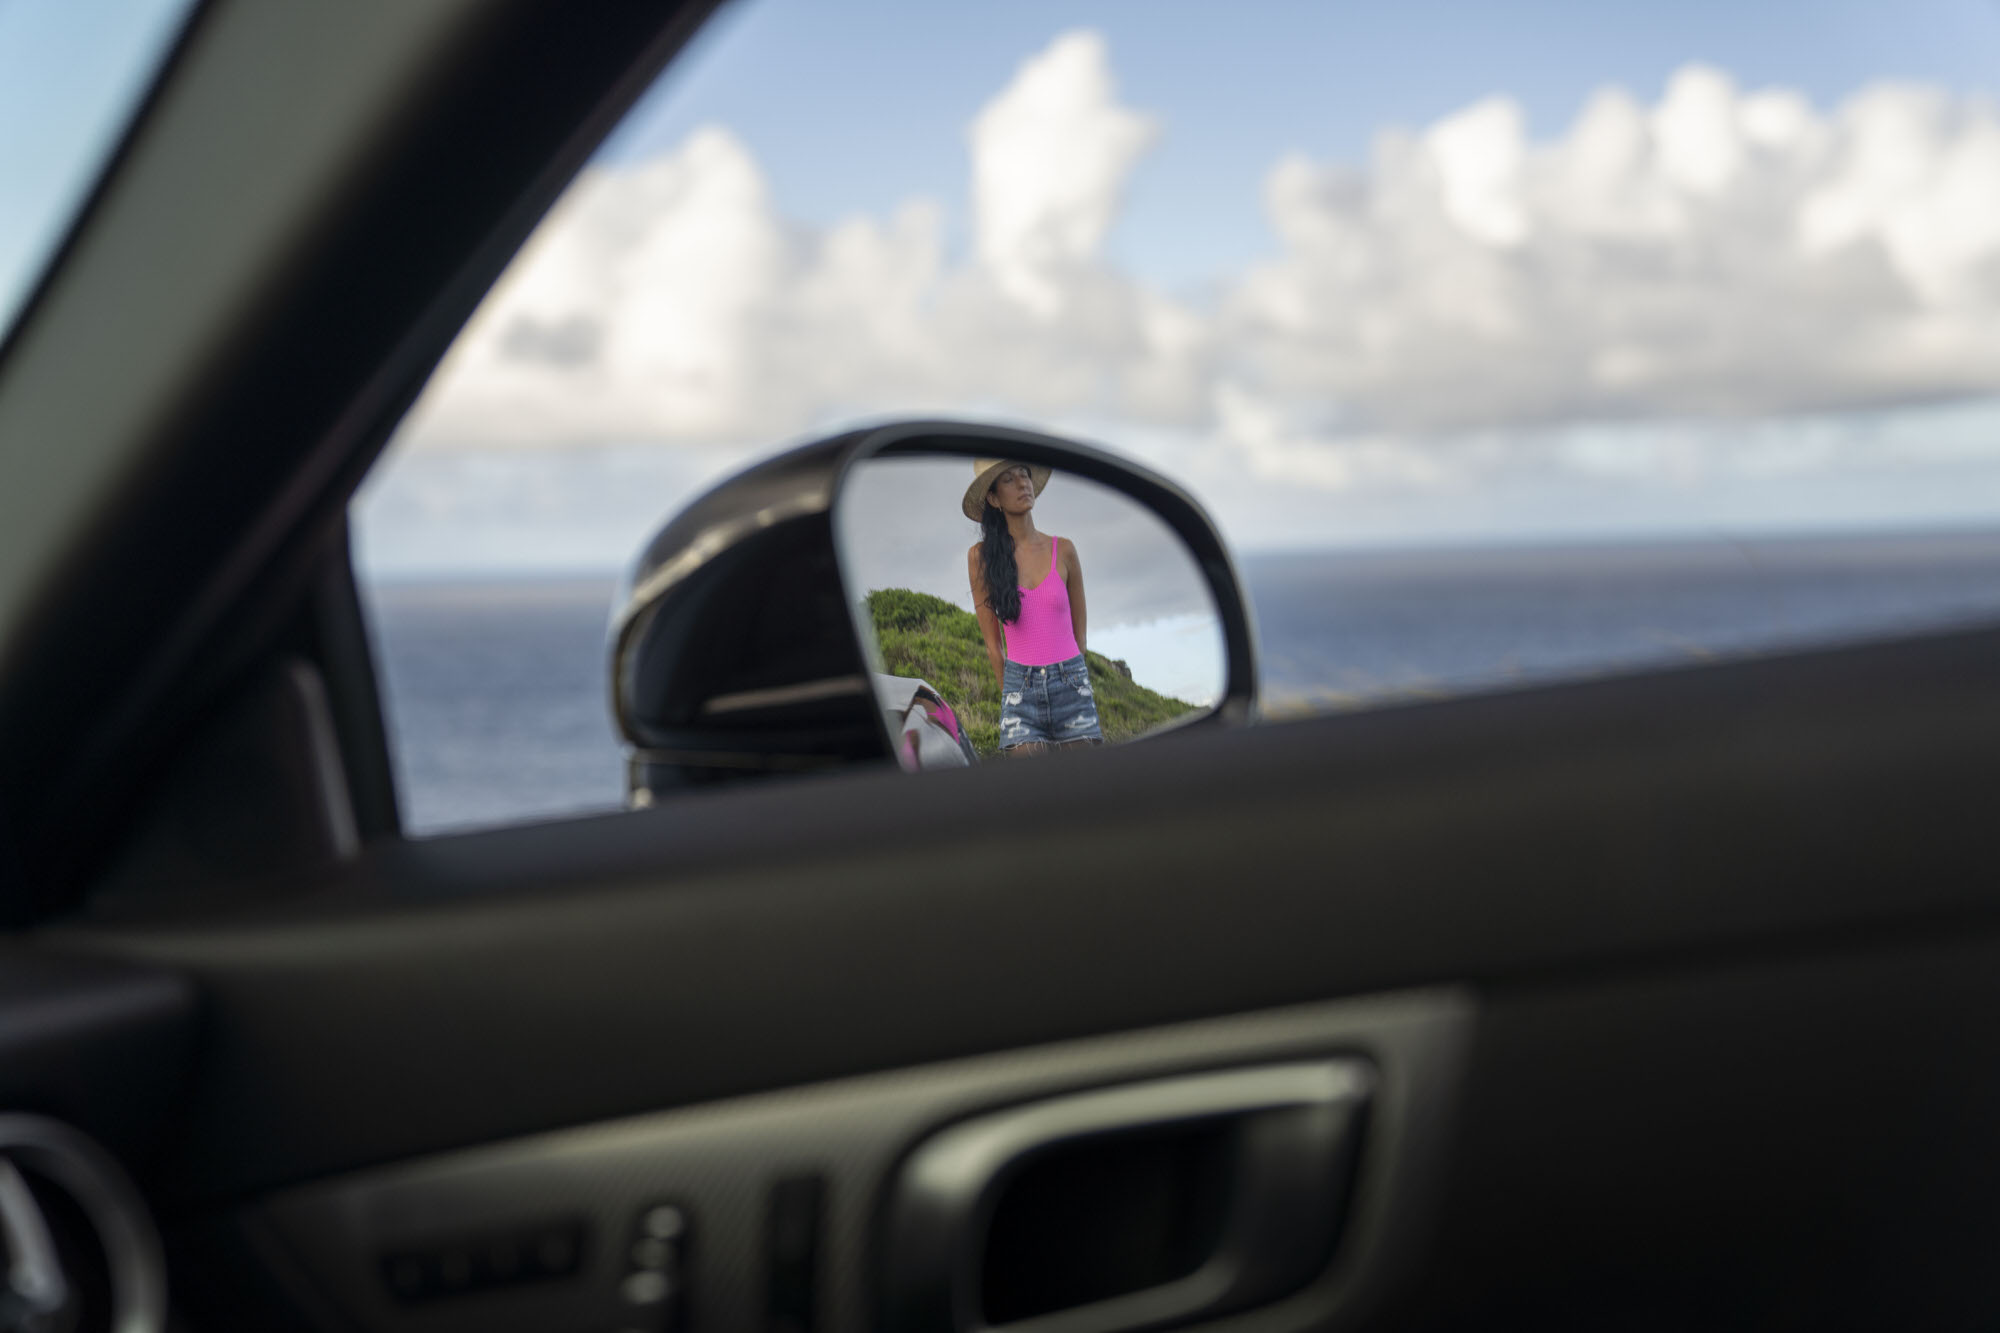 Chelsea Zerjav in the rear mirror of a Mercedes-Benz SLC 300